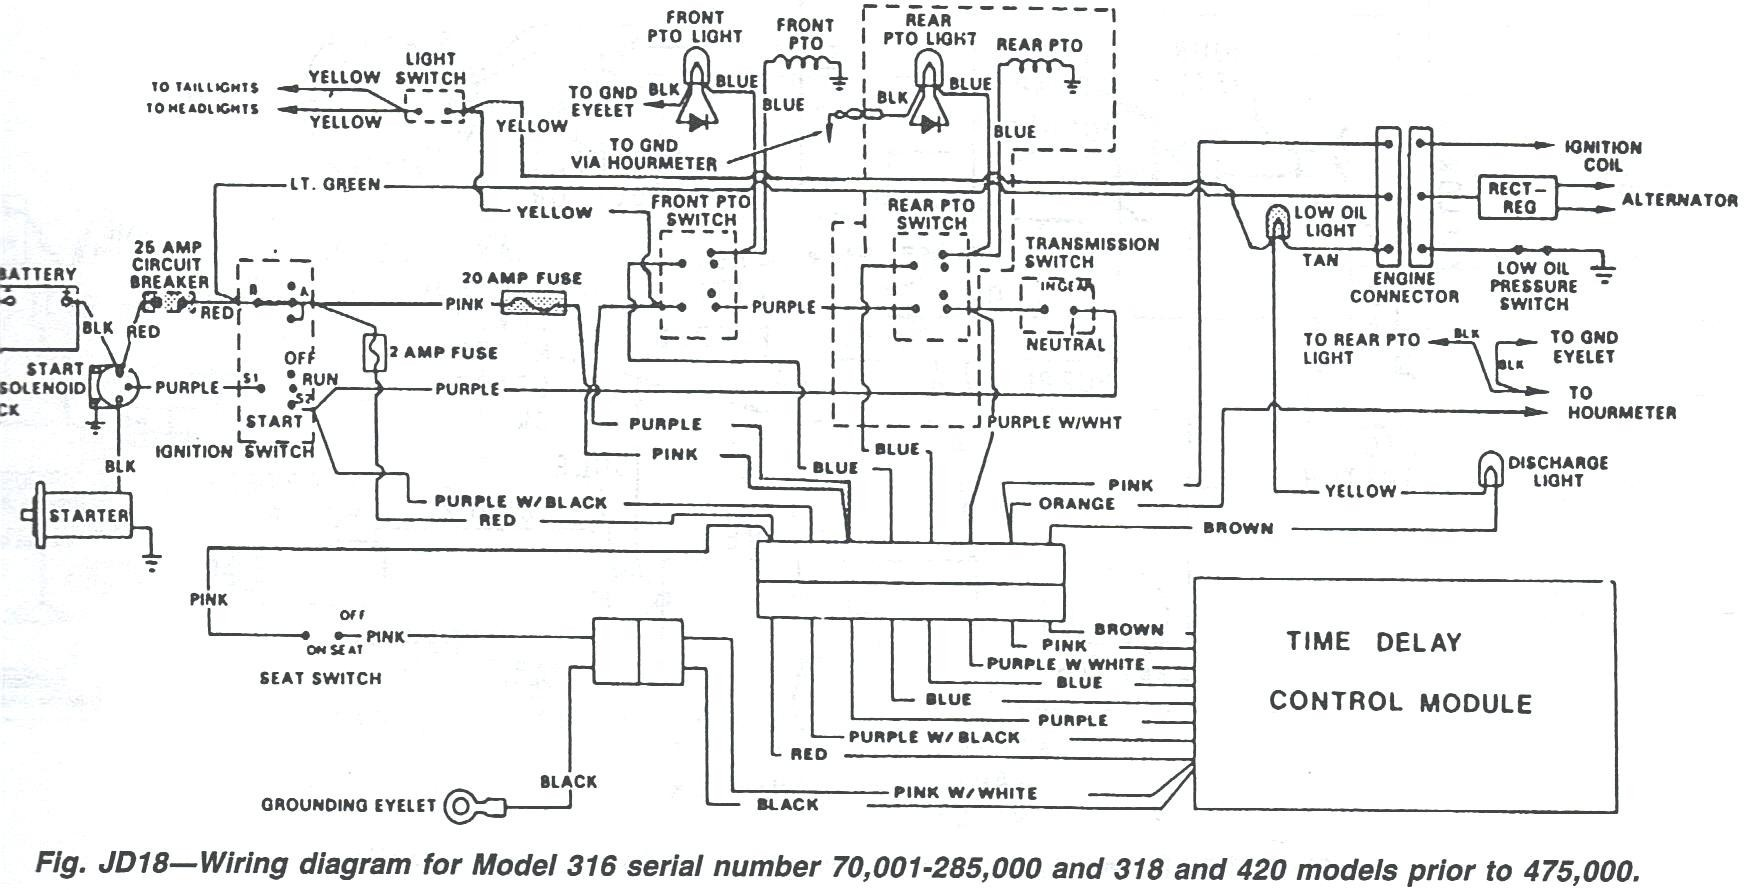 Briggs And Stratton 20 Hp Intek Wiring Diagram